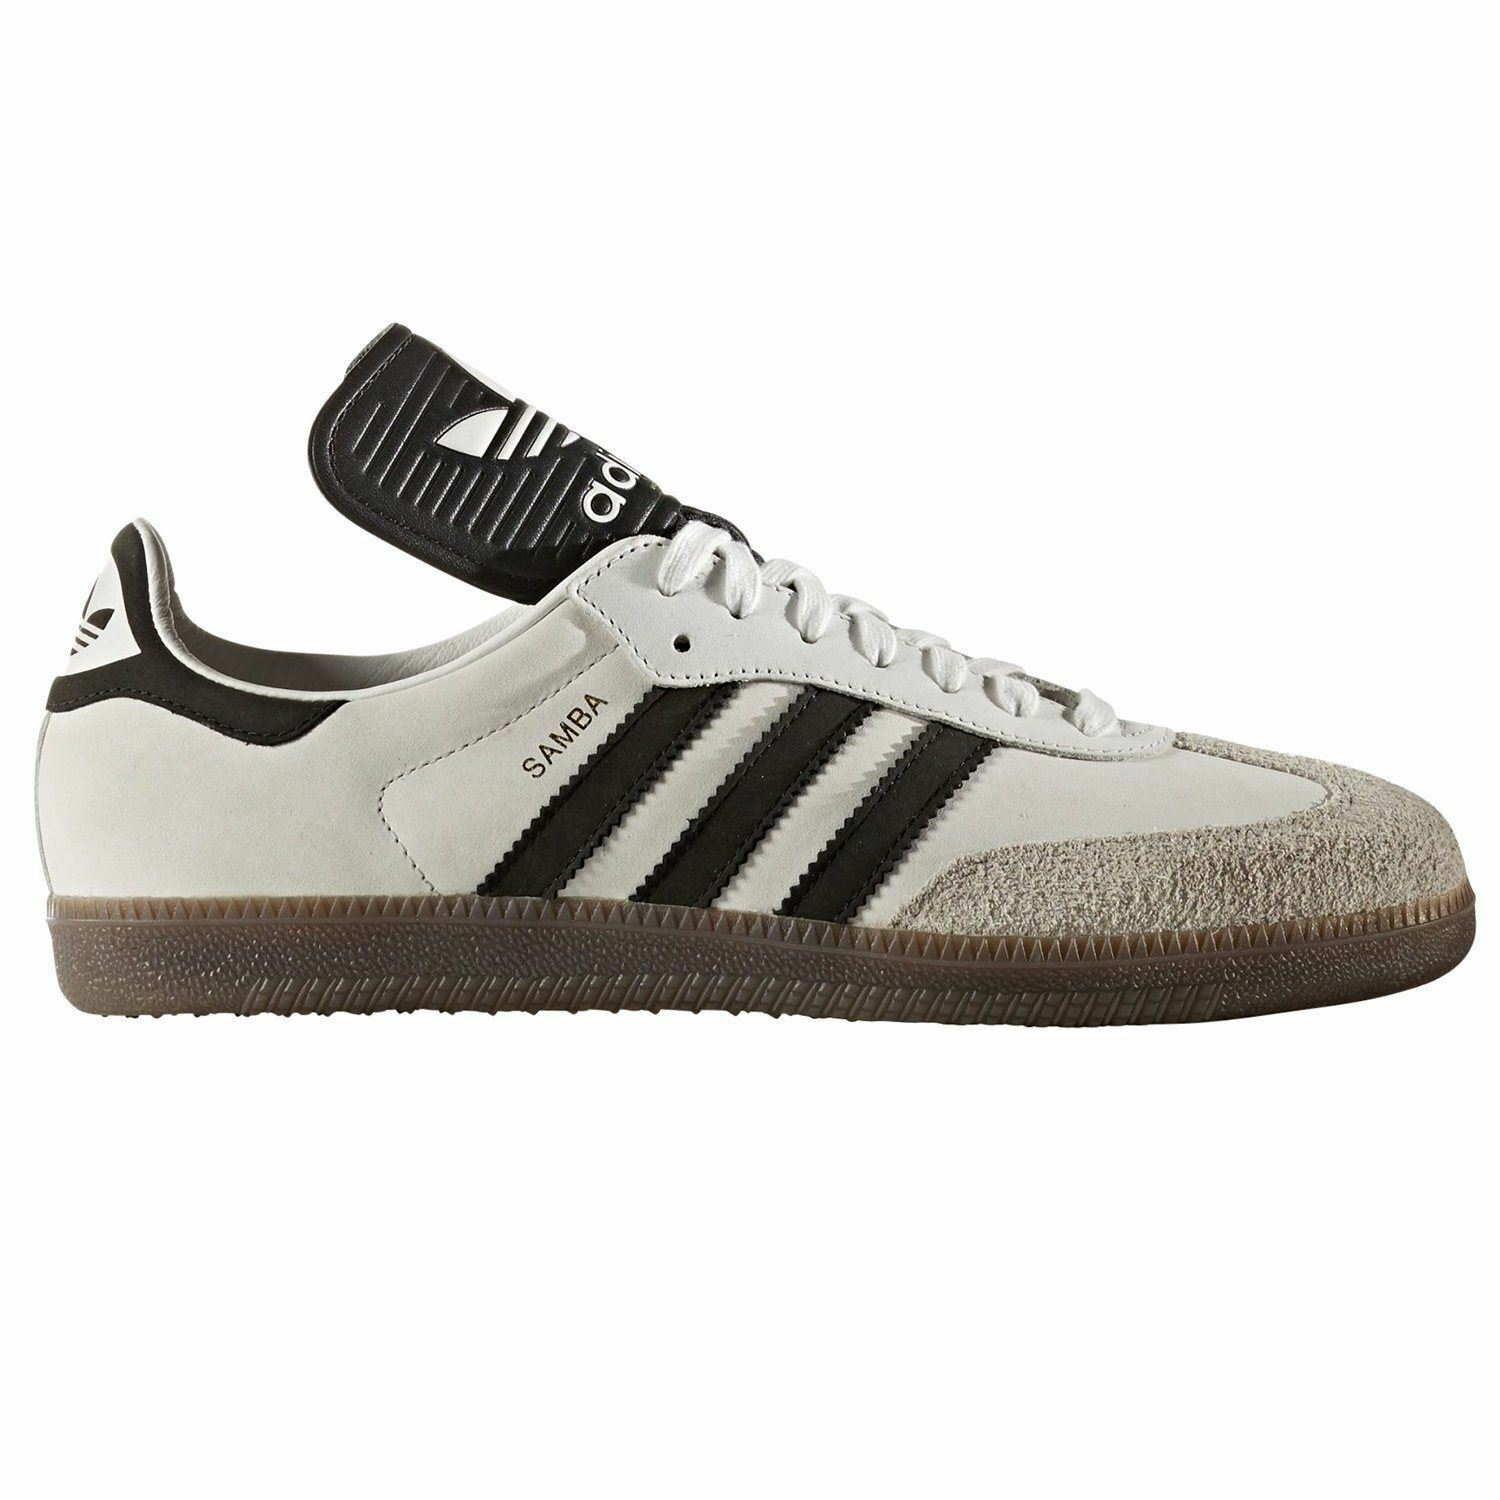 adidas ORIGINALS SAMBA OG MADE IN GERMANY VINTAGE WHITE MEN'S RETRO CASUAL MOD